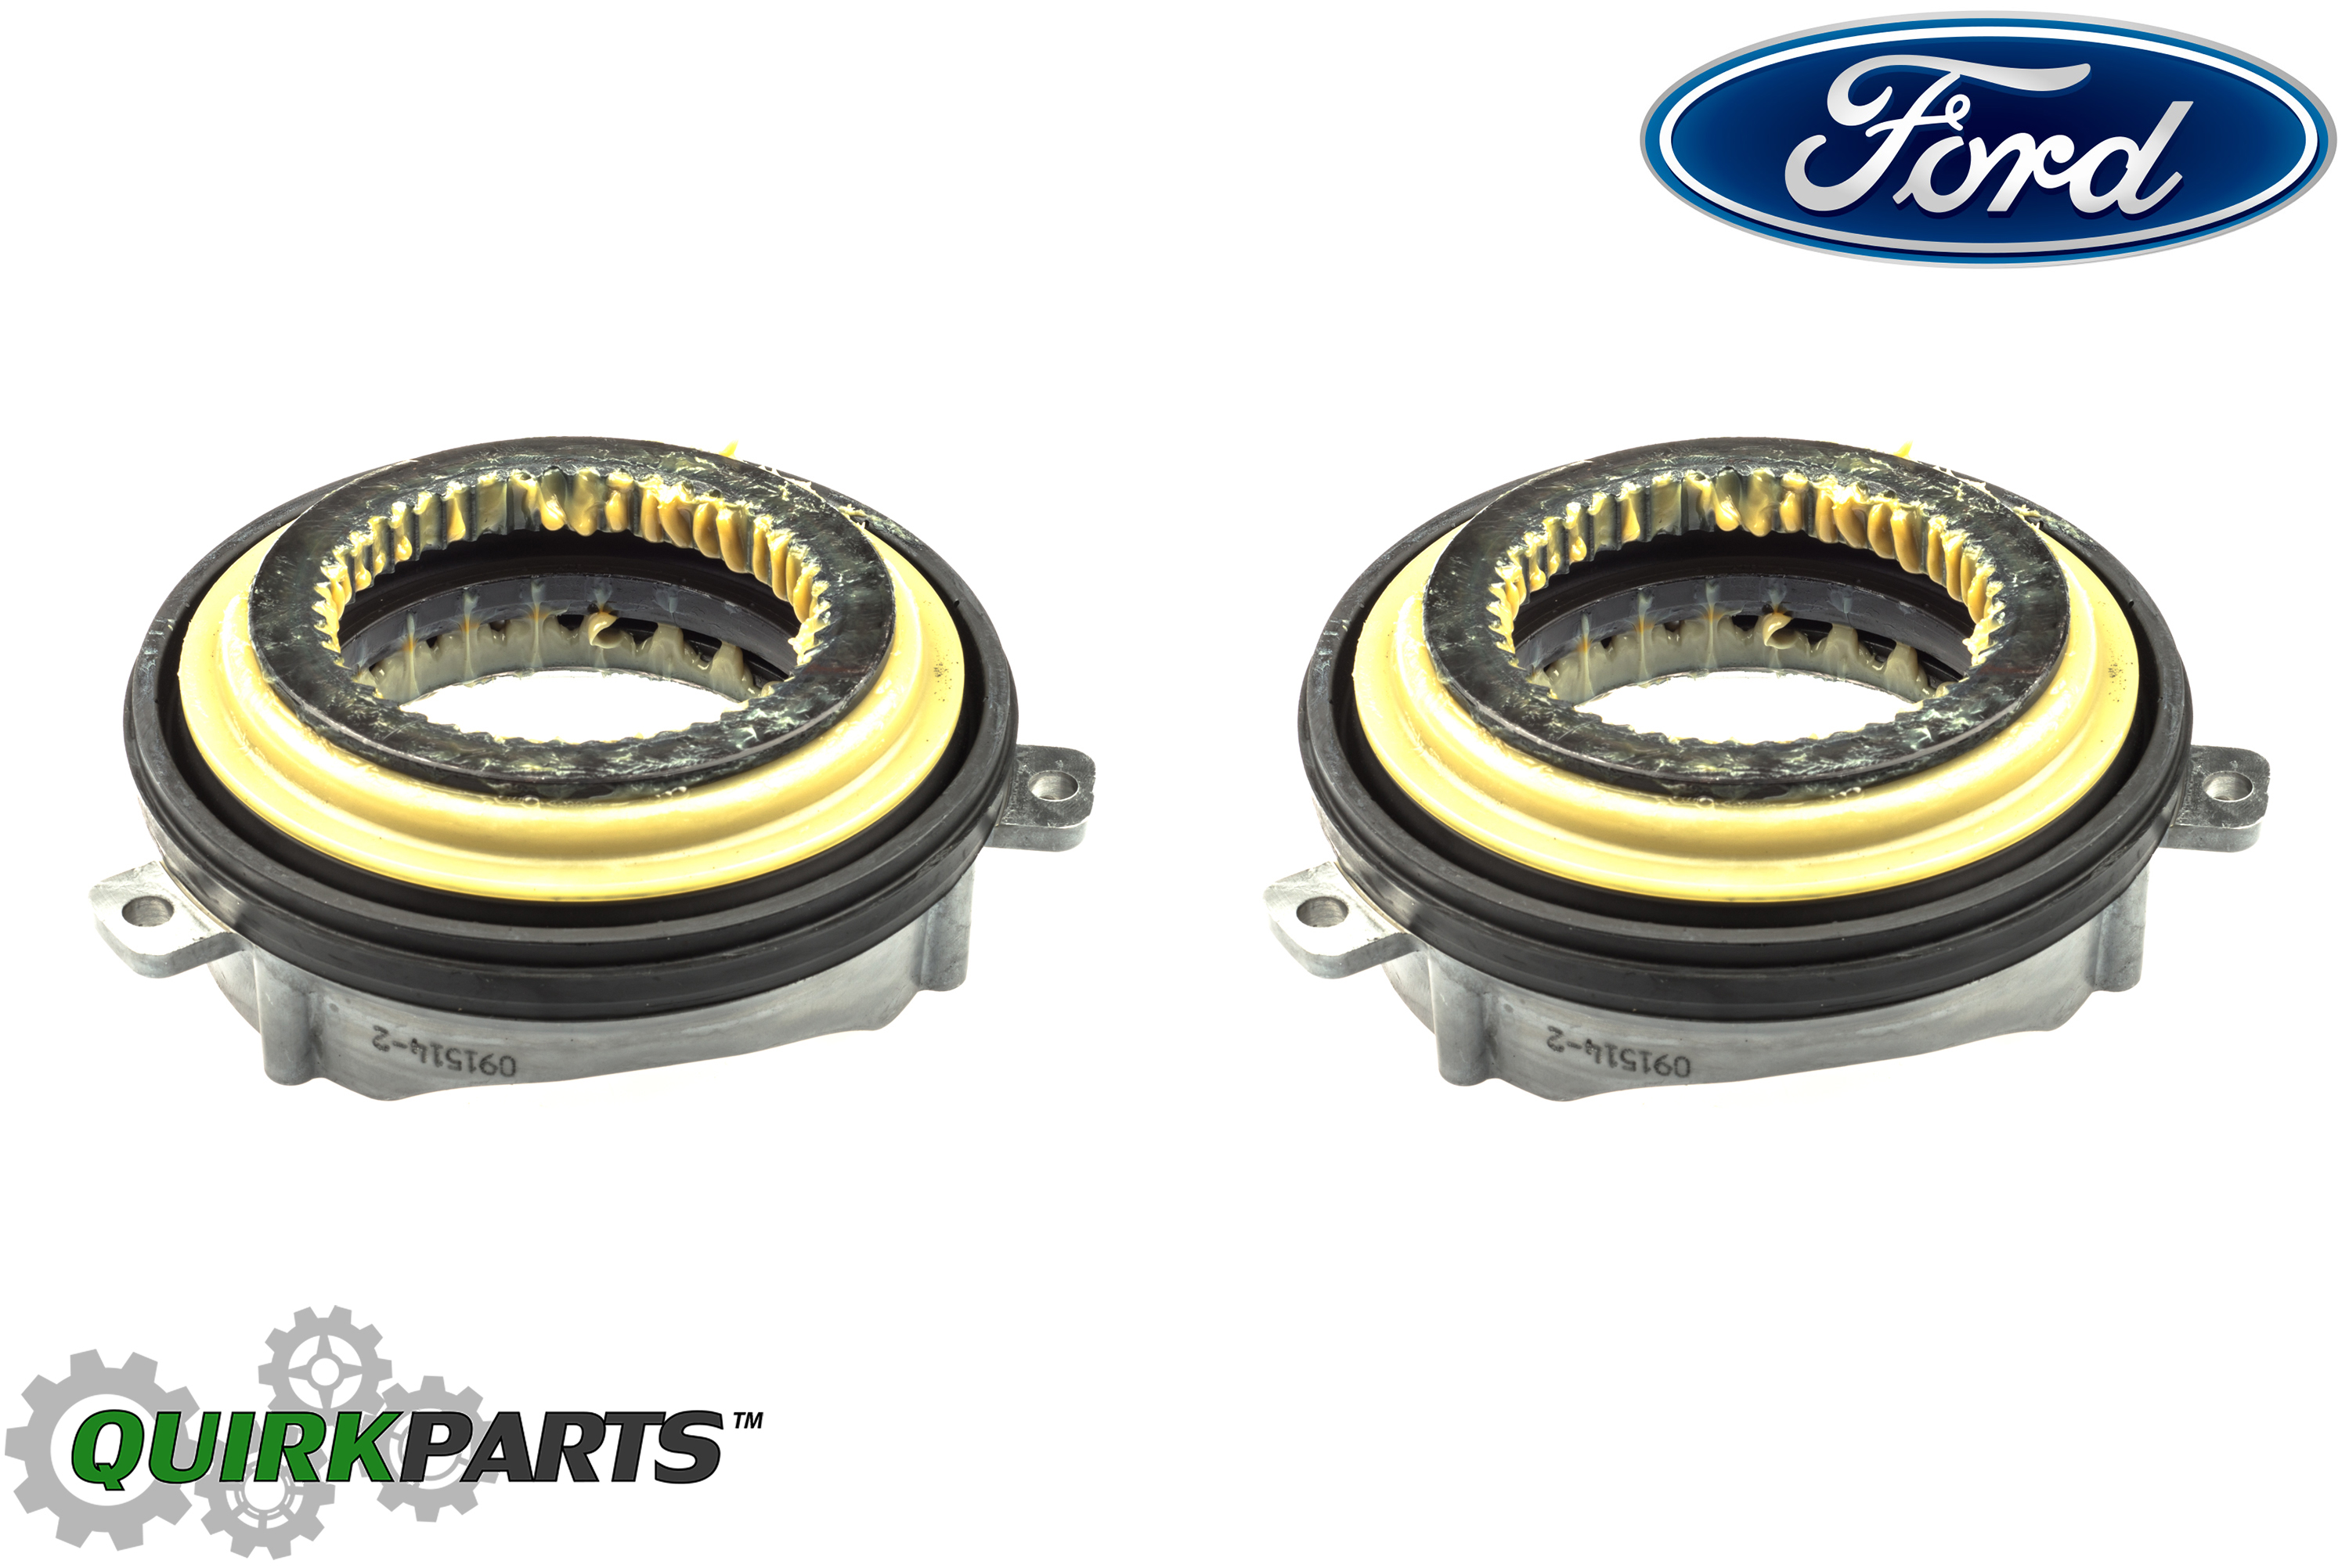 Ford F150 Expedition Navigator 4WD 4x4 Front Axle Auto ...